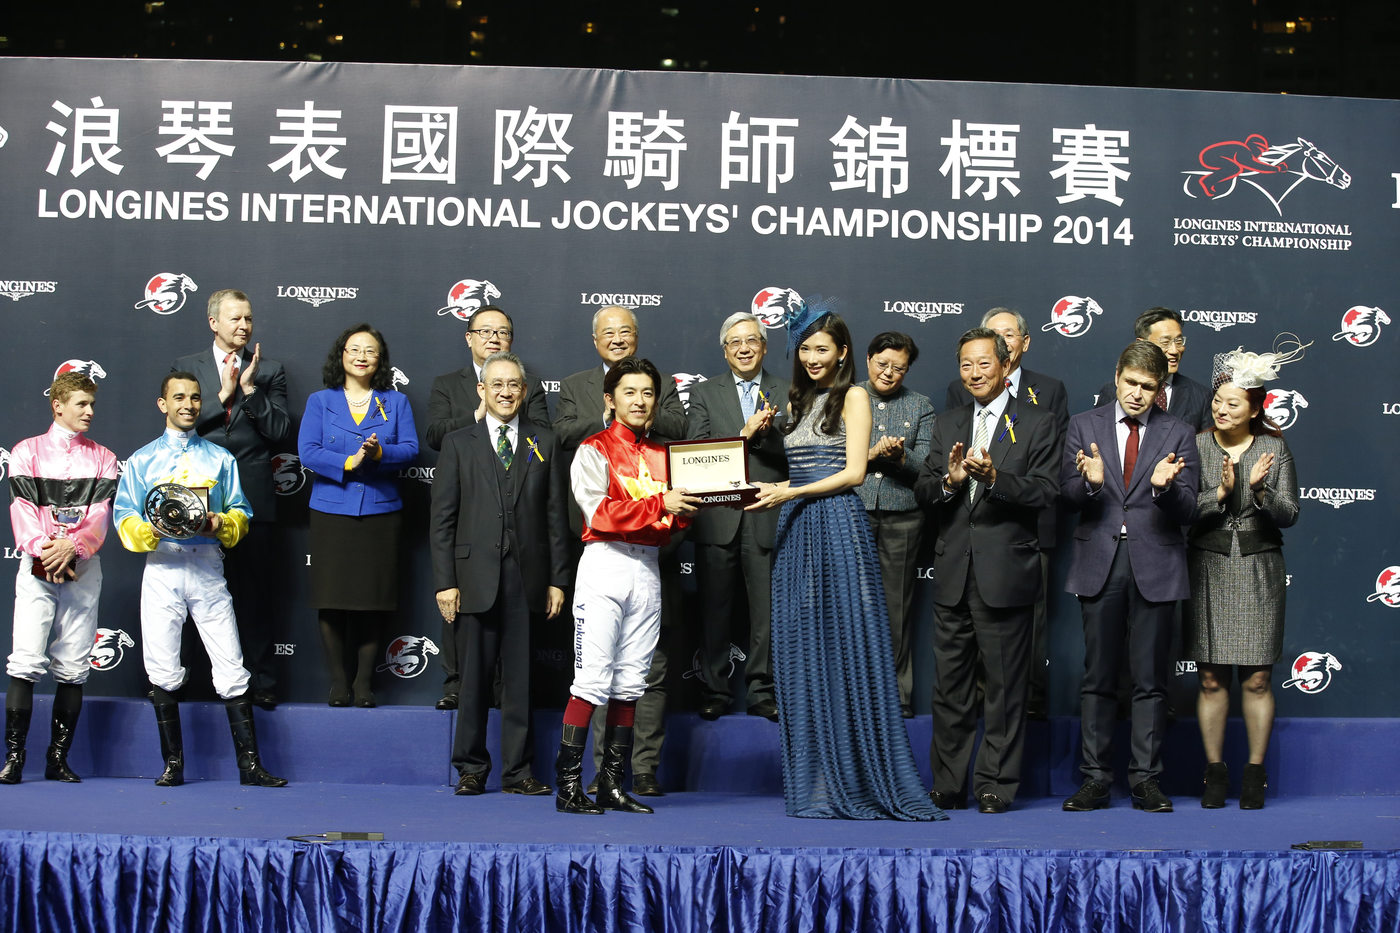 Longines Flat Racing Event: Remarkable victory of Yuichi Fukunaga at the Longines International Jockey's Championship 2014 5